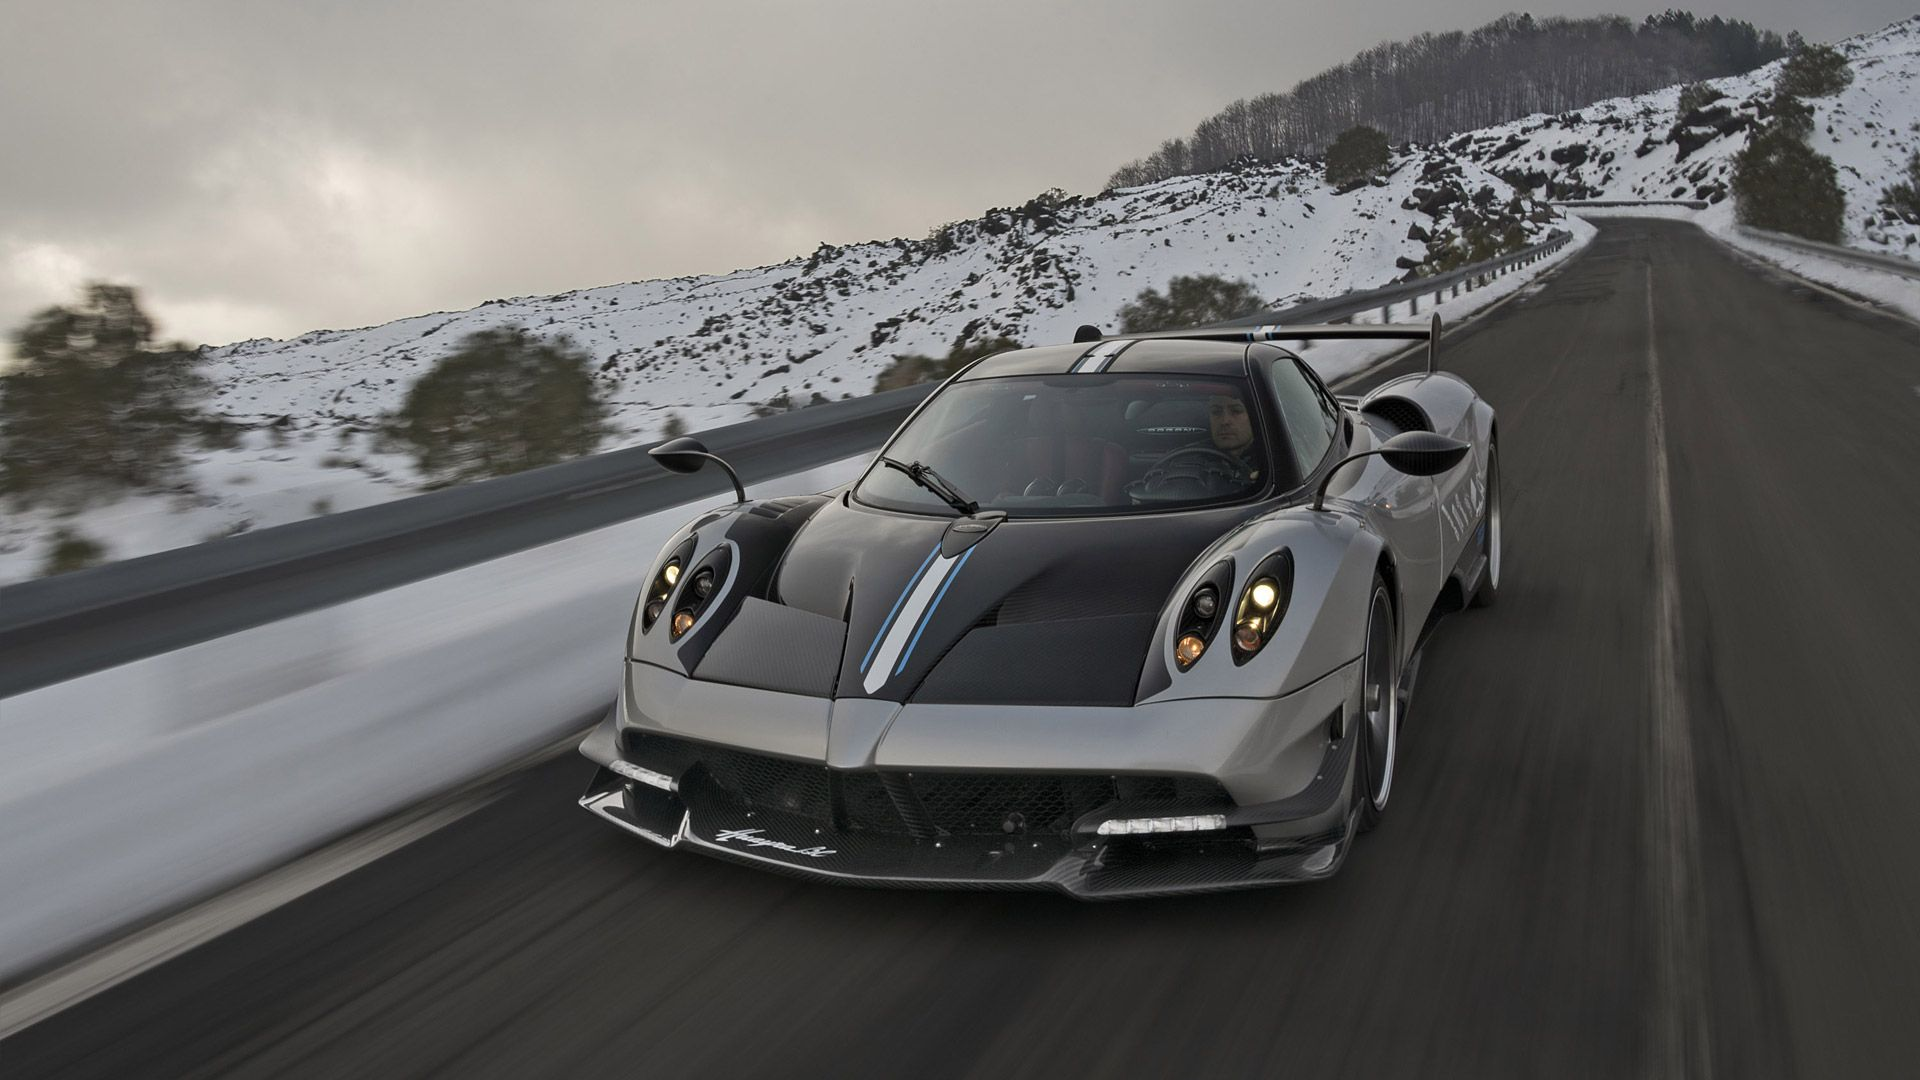 Pagani Wallpapers On Wallpaperdog